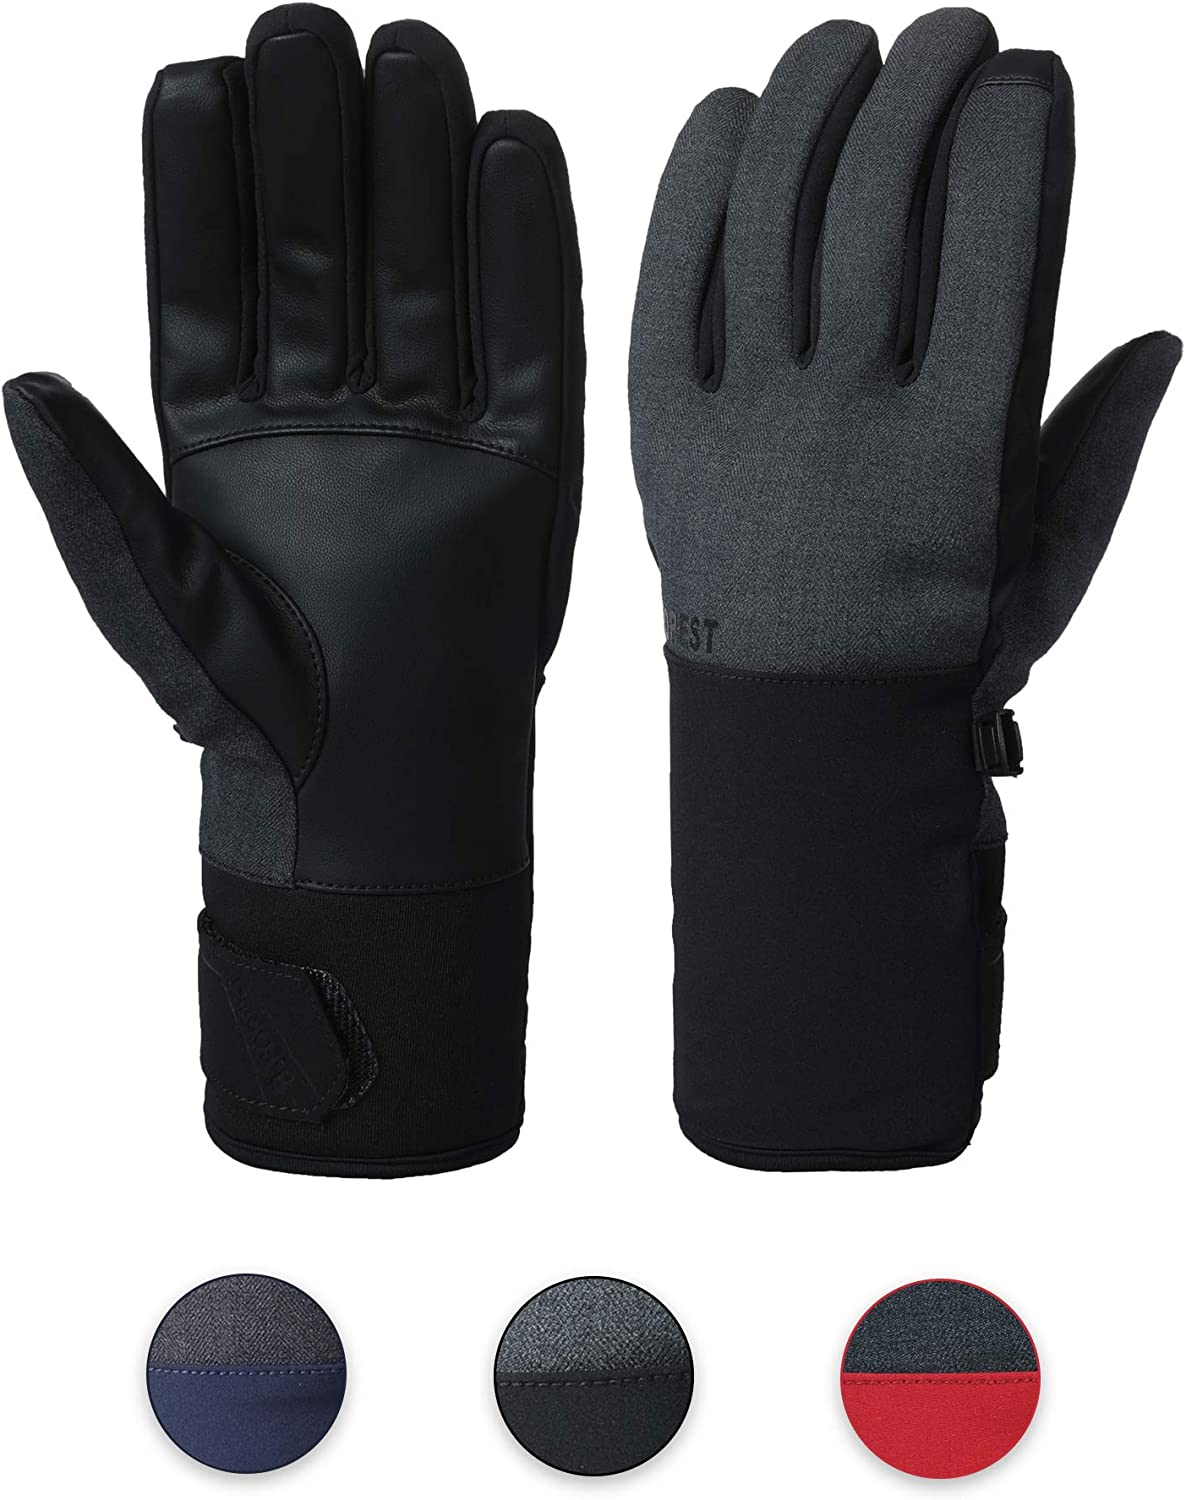 B-FOREST Winter Gloves for Men Women, Touchscreen Thermal Gloves Water Resistant & Windproof in Cold Weather